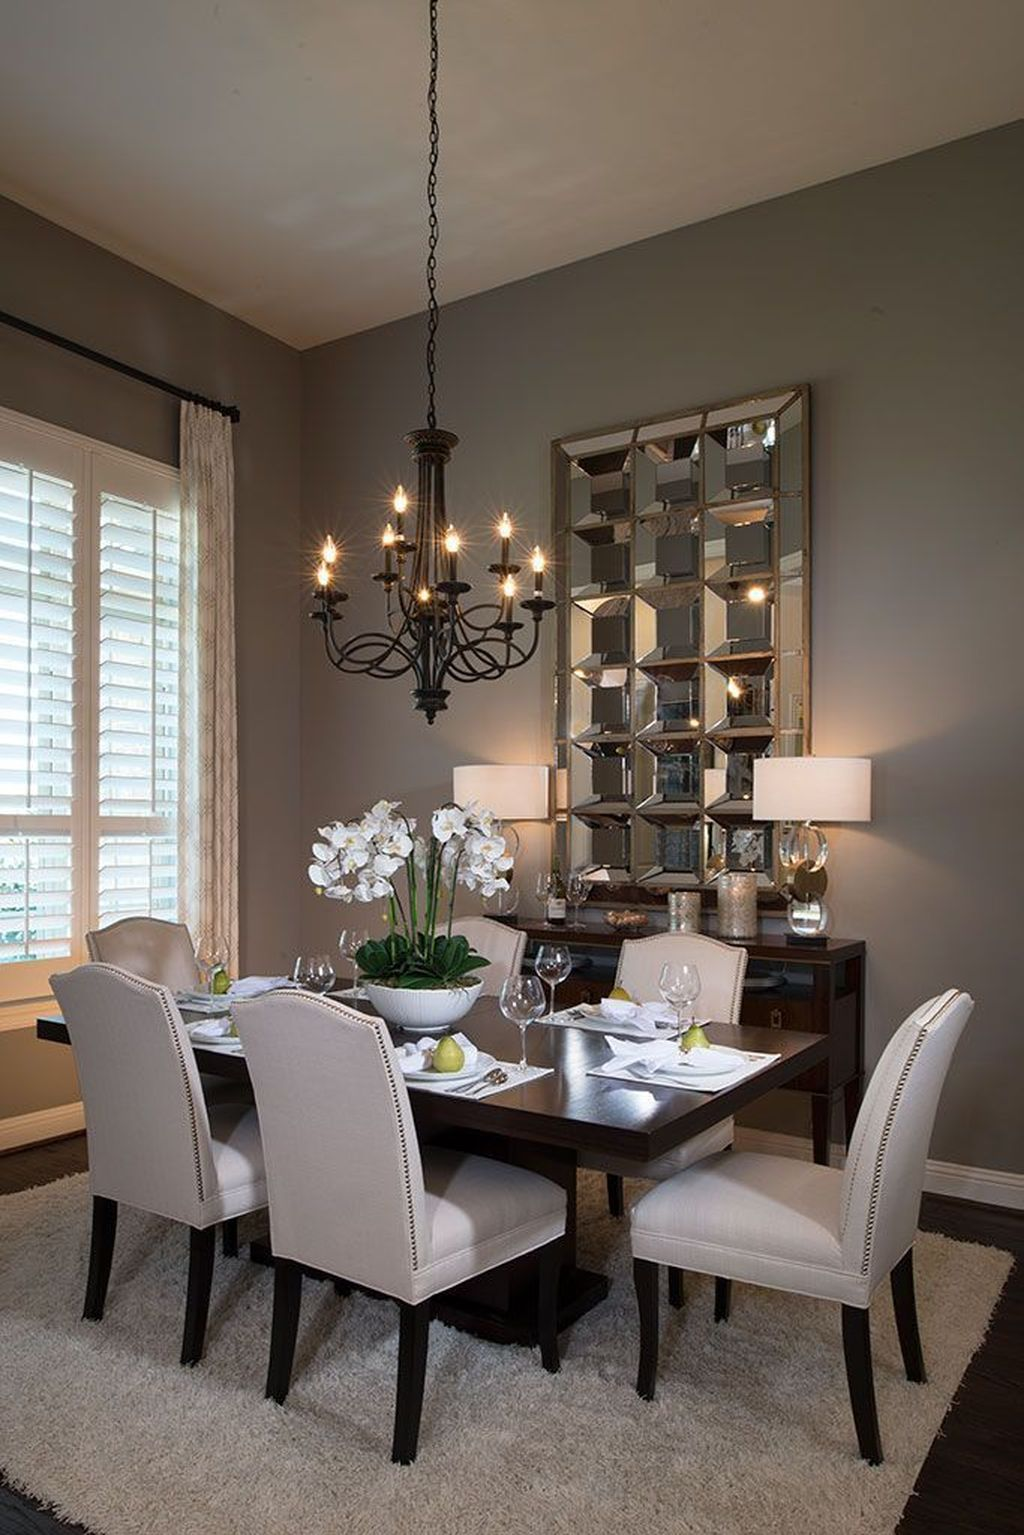 Admirable Dining Room Design Ideas 05